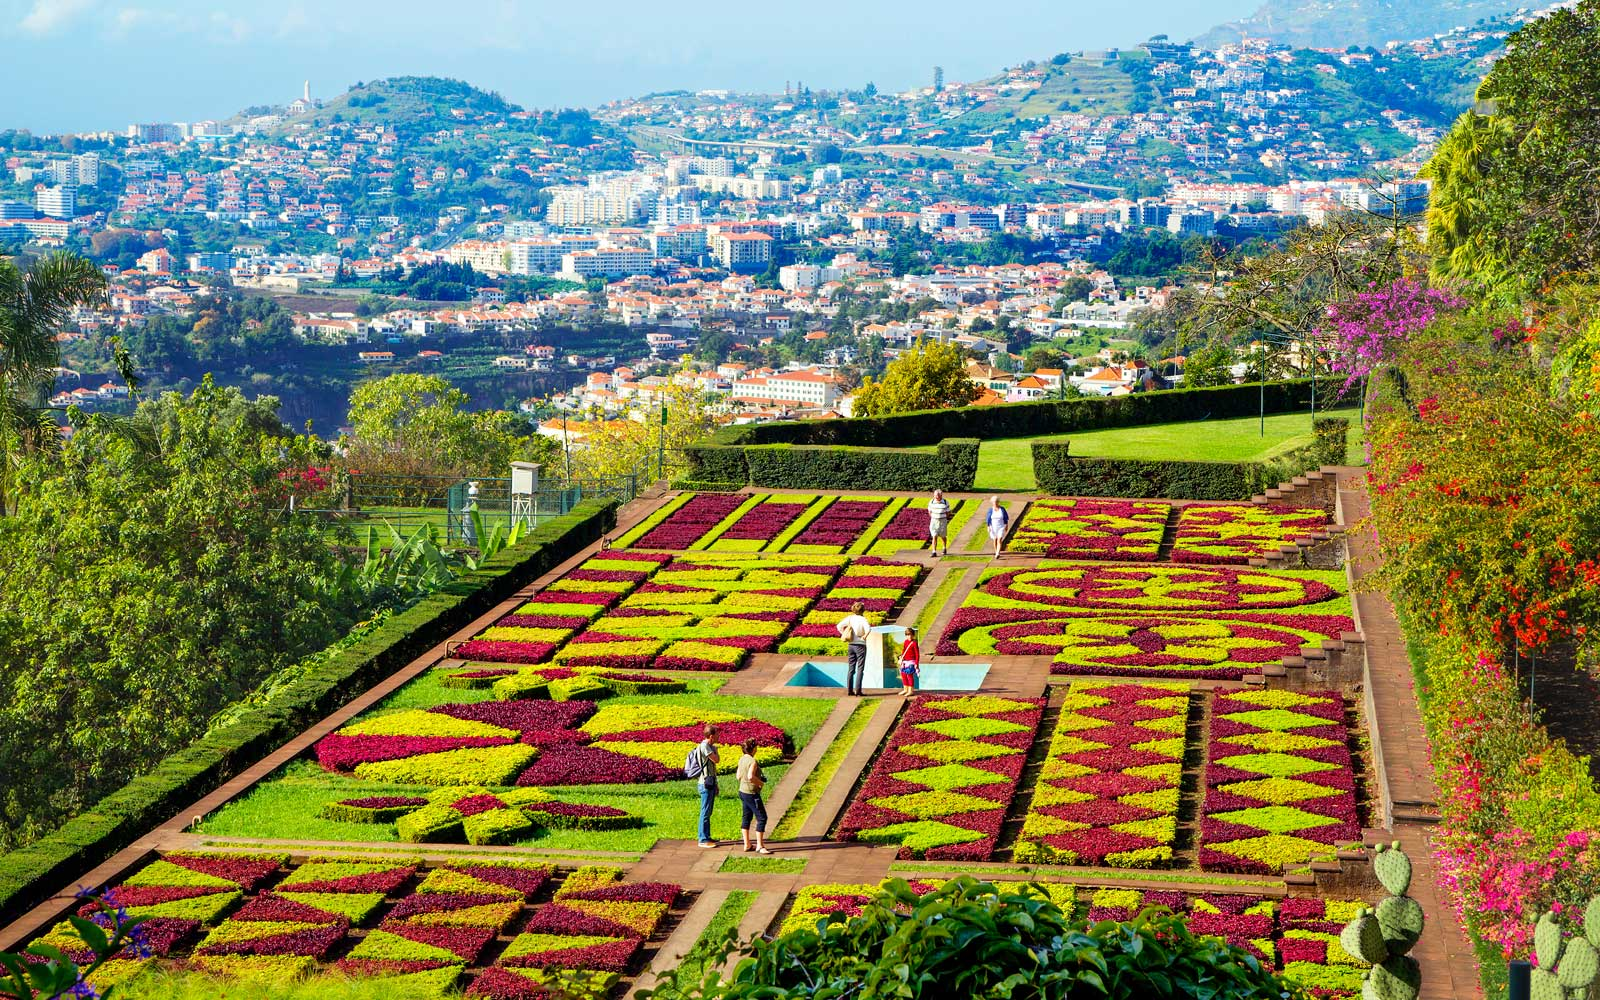 Madeira Botanical garden is located at a distance of three kilometers from the center of Funchal, Portugal